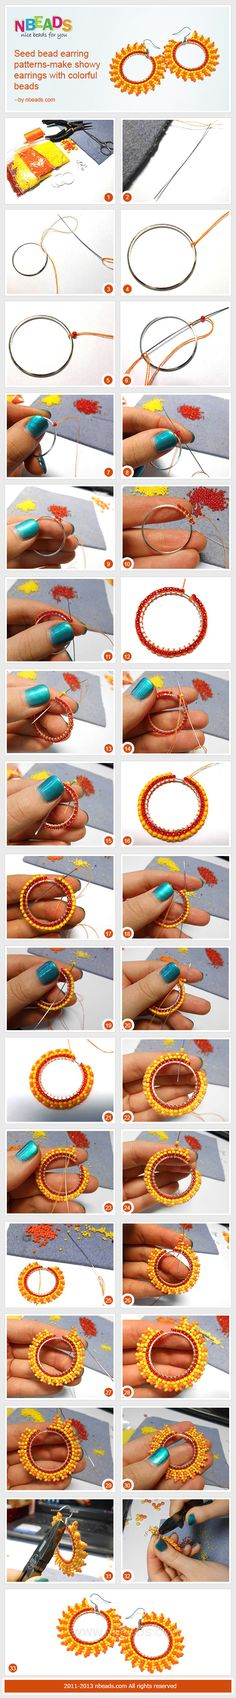 TUTORIAL/BEADING seed bead earring patterns-make showy earrings with colorful beads